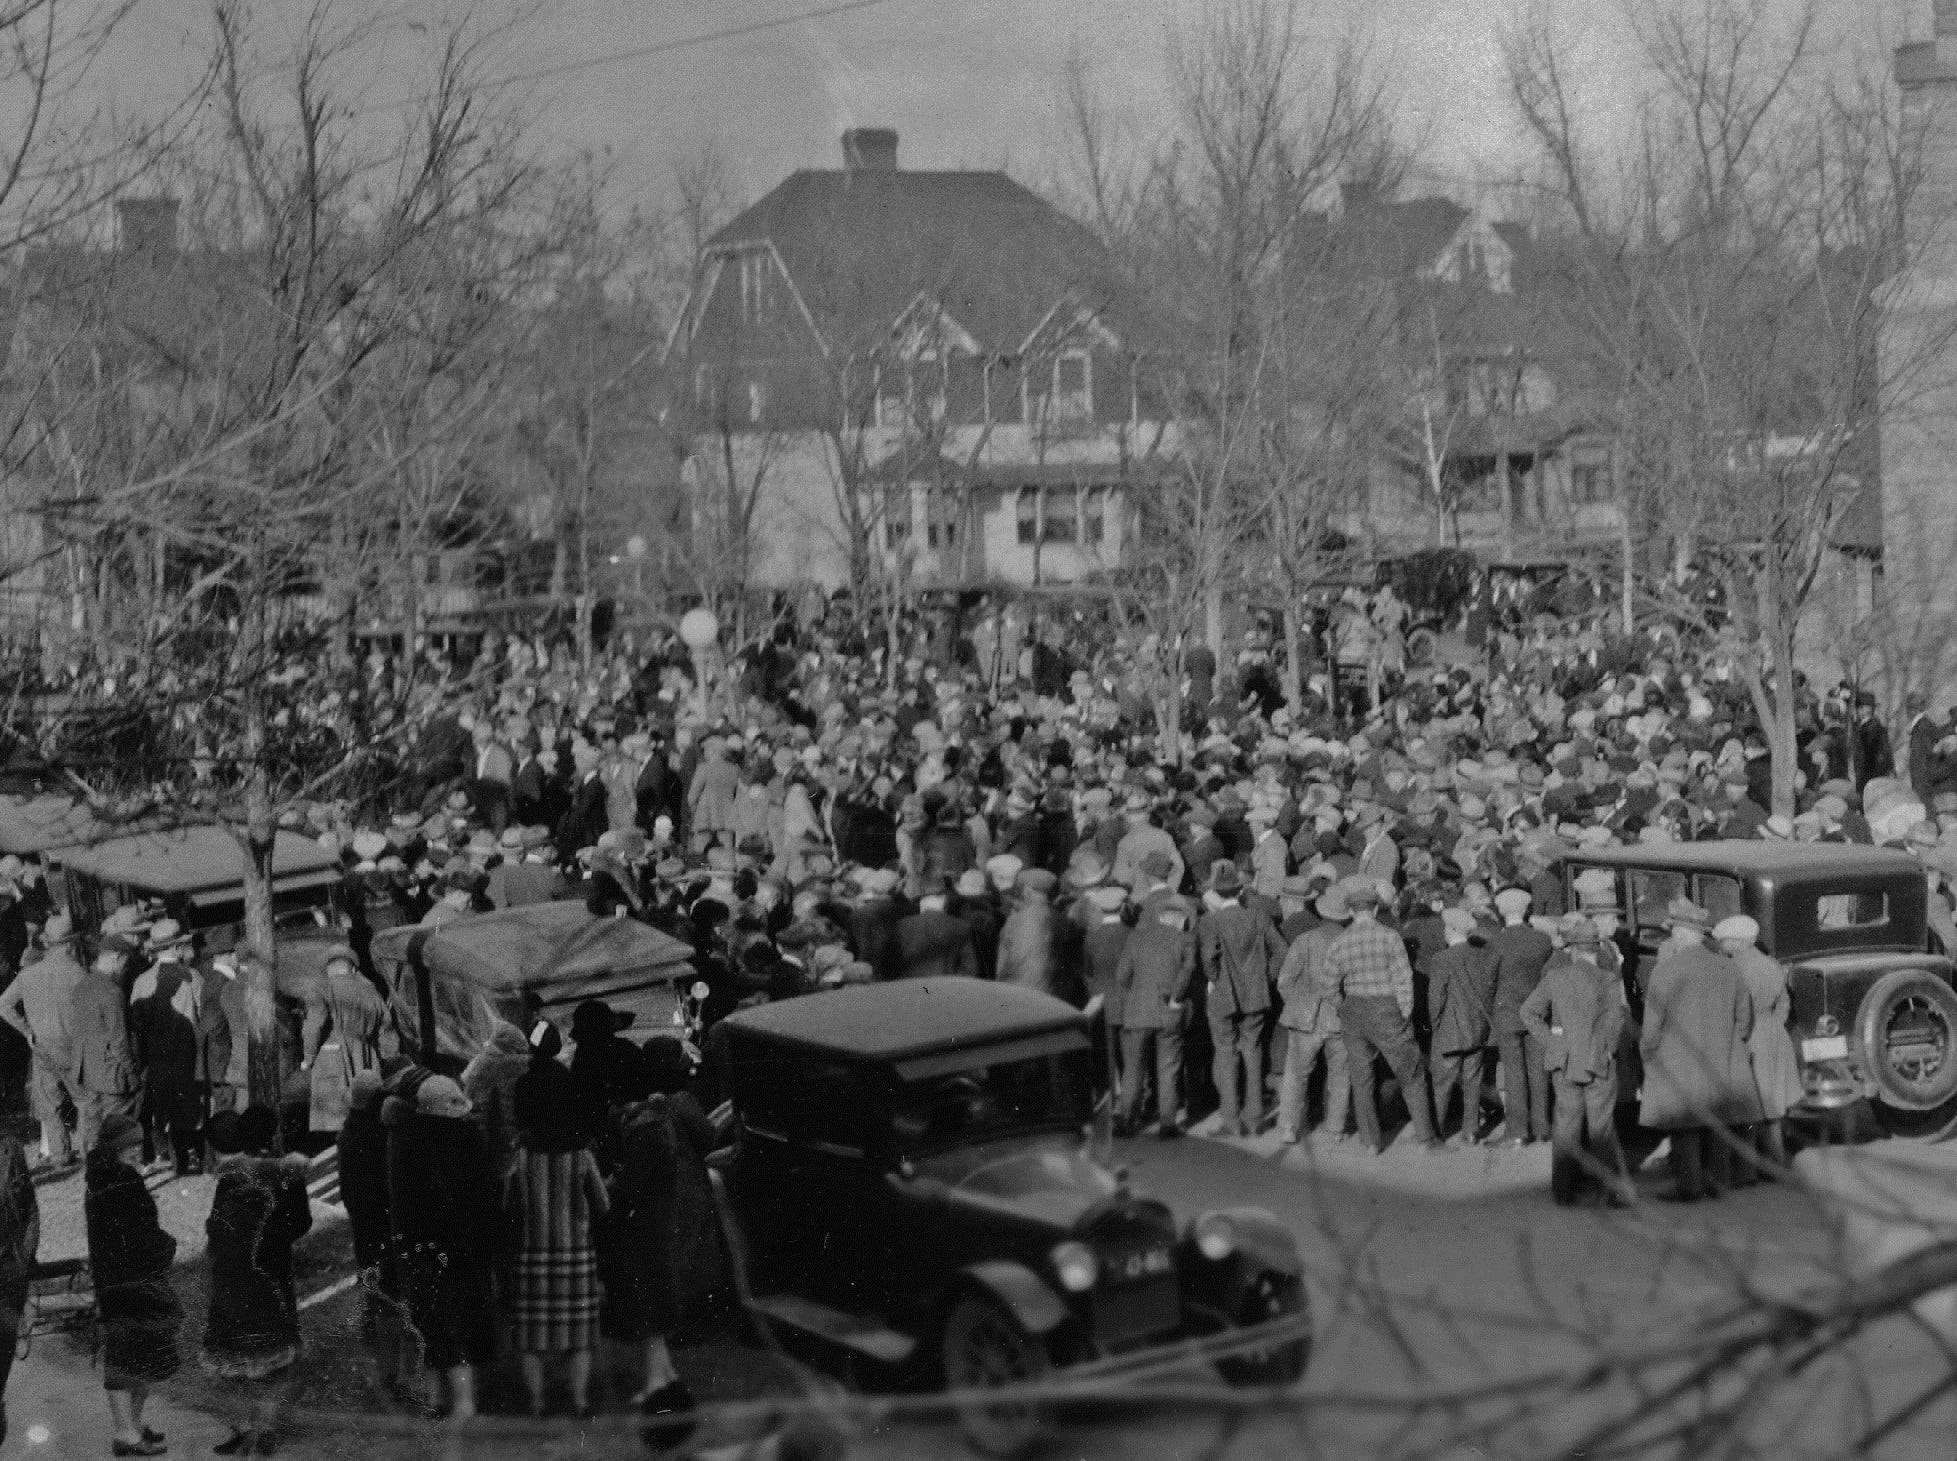 The Episcopal Church of the Incarnation hosted Charles M. Russell's funeral on Oct. 27, 1926, after his death on Oct. 24, 1926.